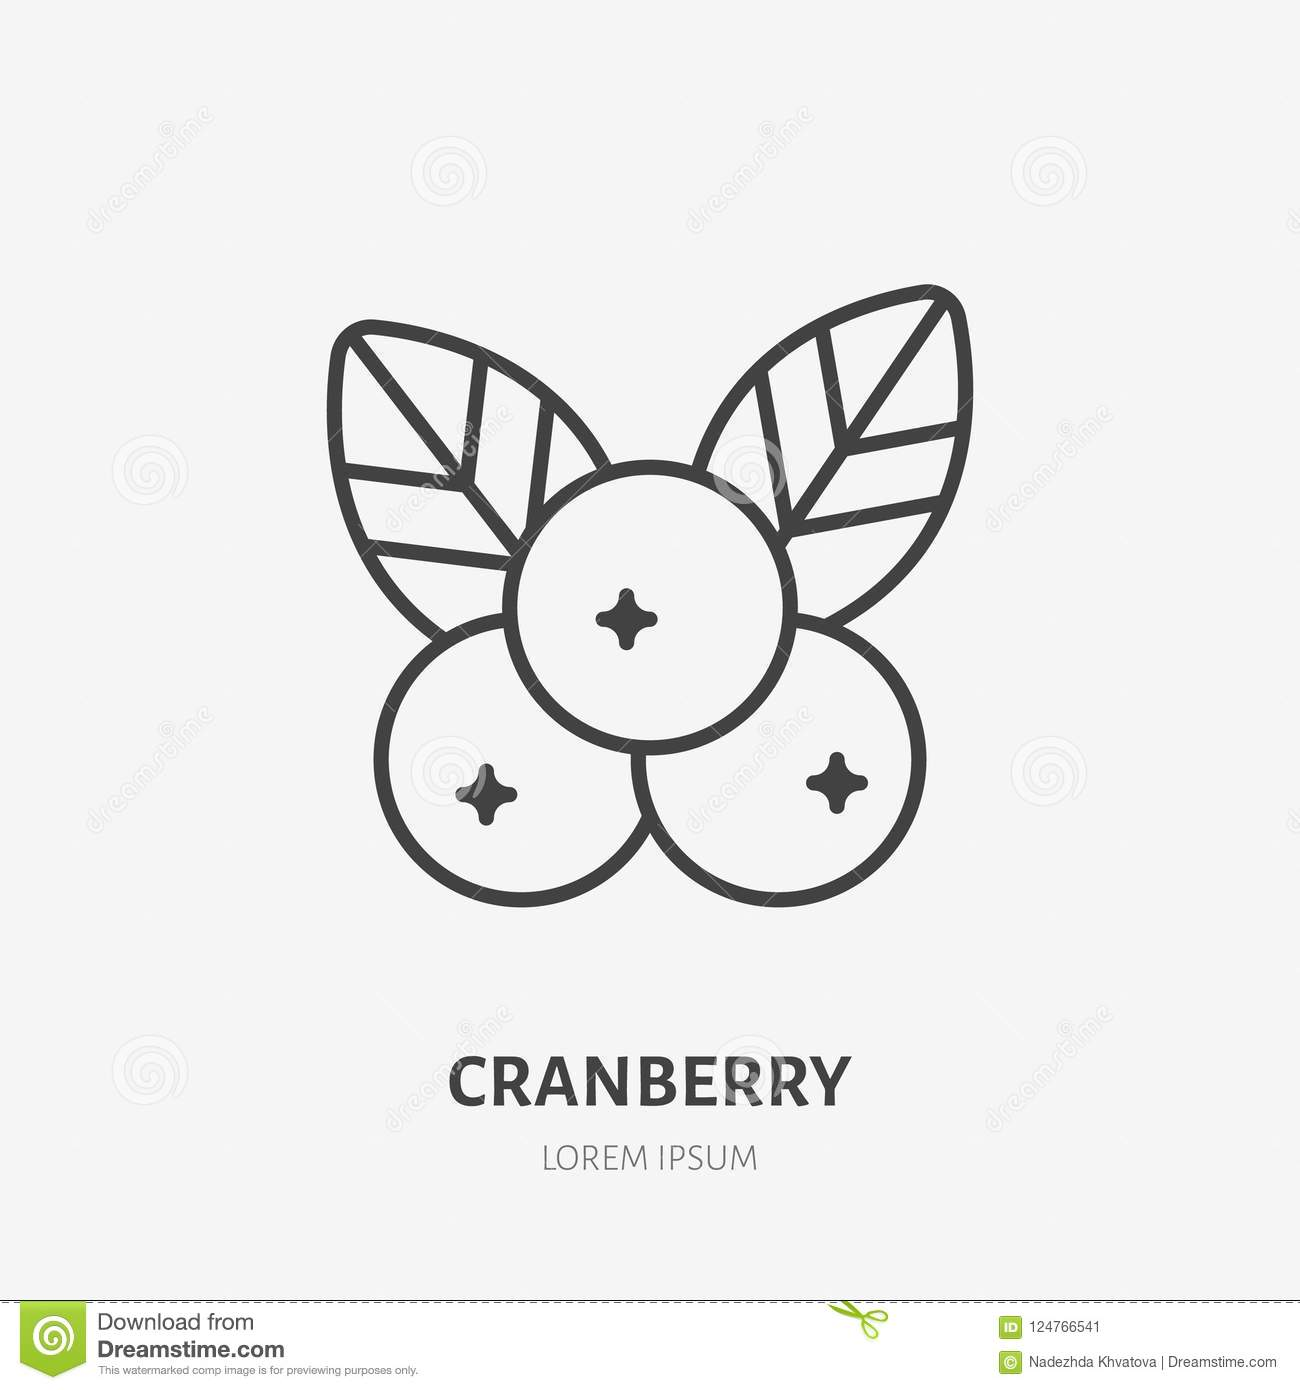 Cranberry flat line icon, forest berry sign, healthy food logo. Illustration of cowberry, lingonberry for natiral food